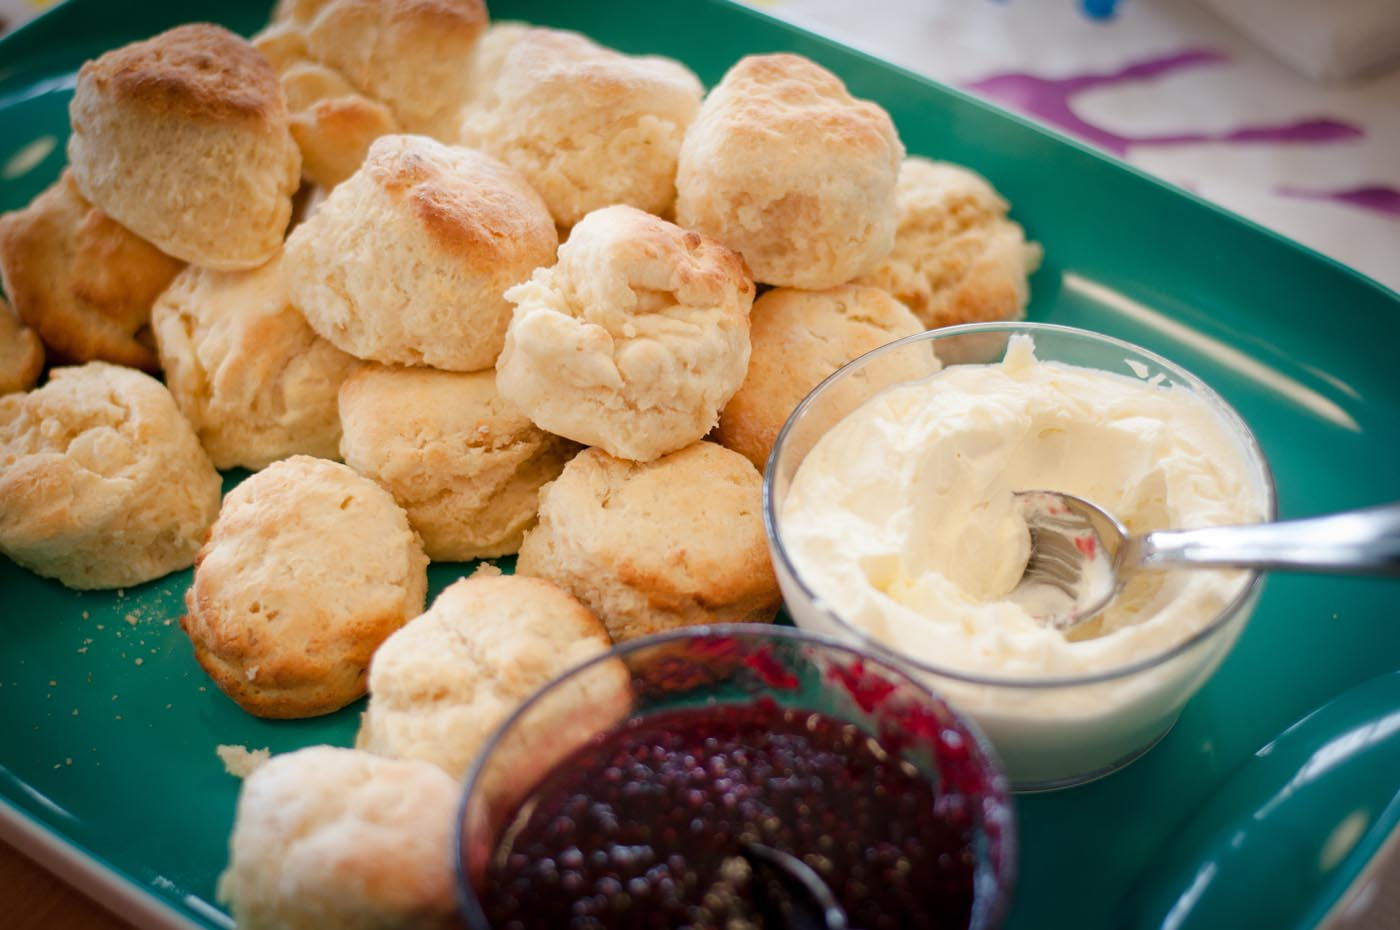 Photo showing a tray of scones with small bowls of jam and cream each with serving spoons in them - click to view larger image